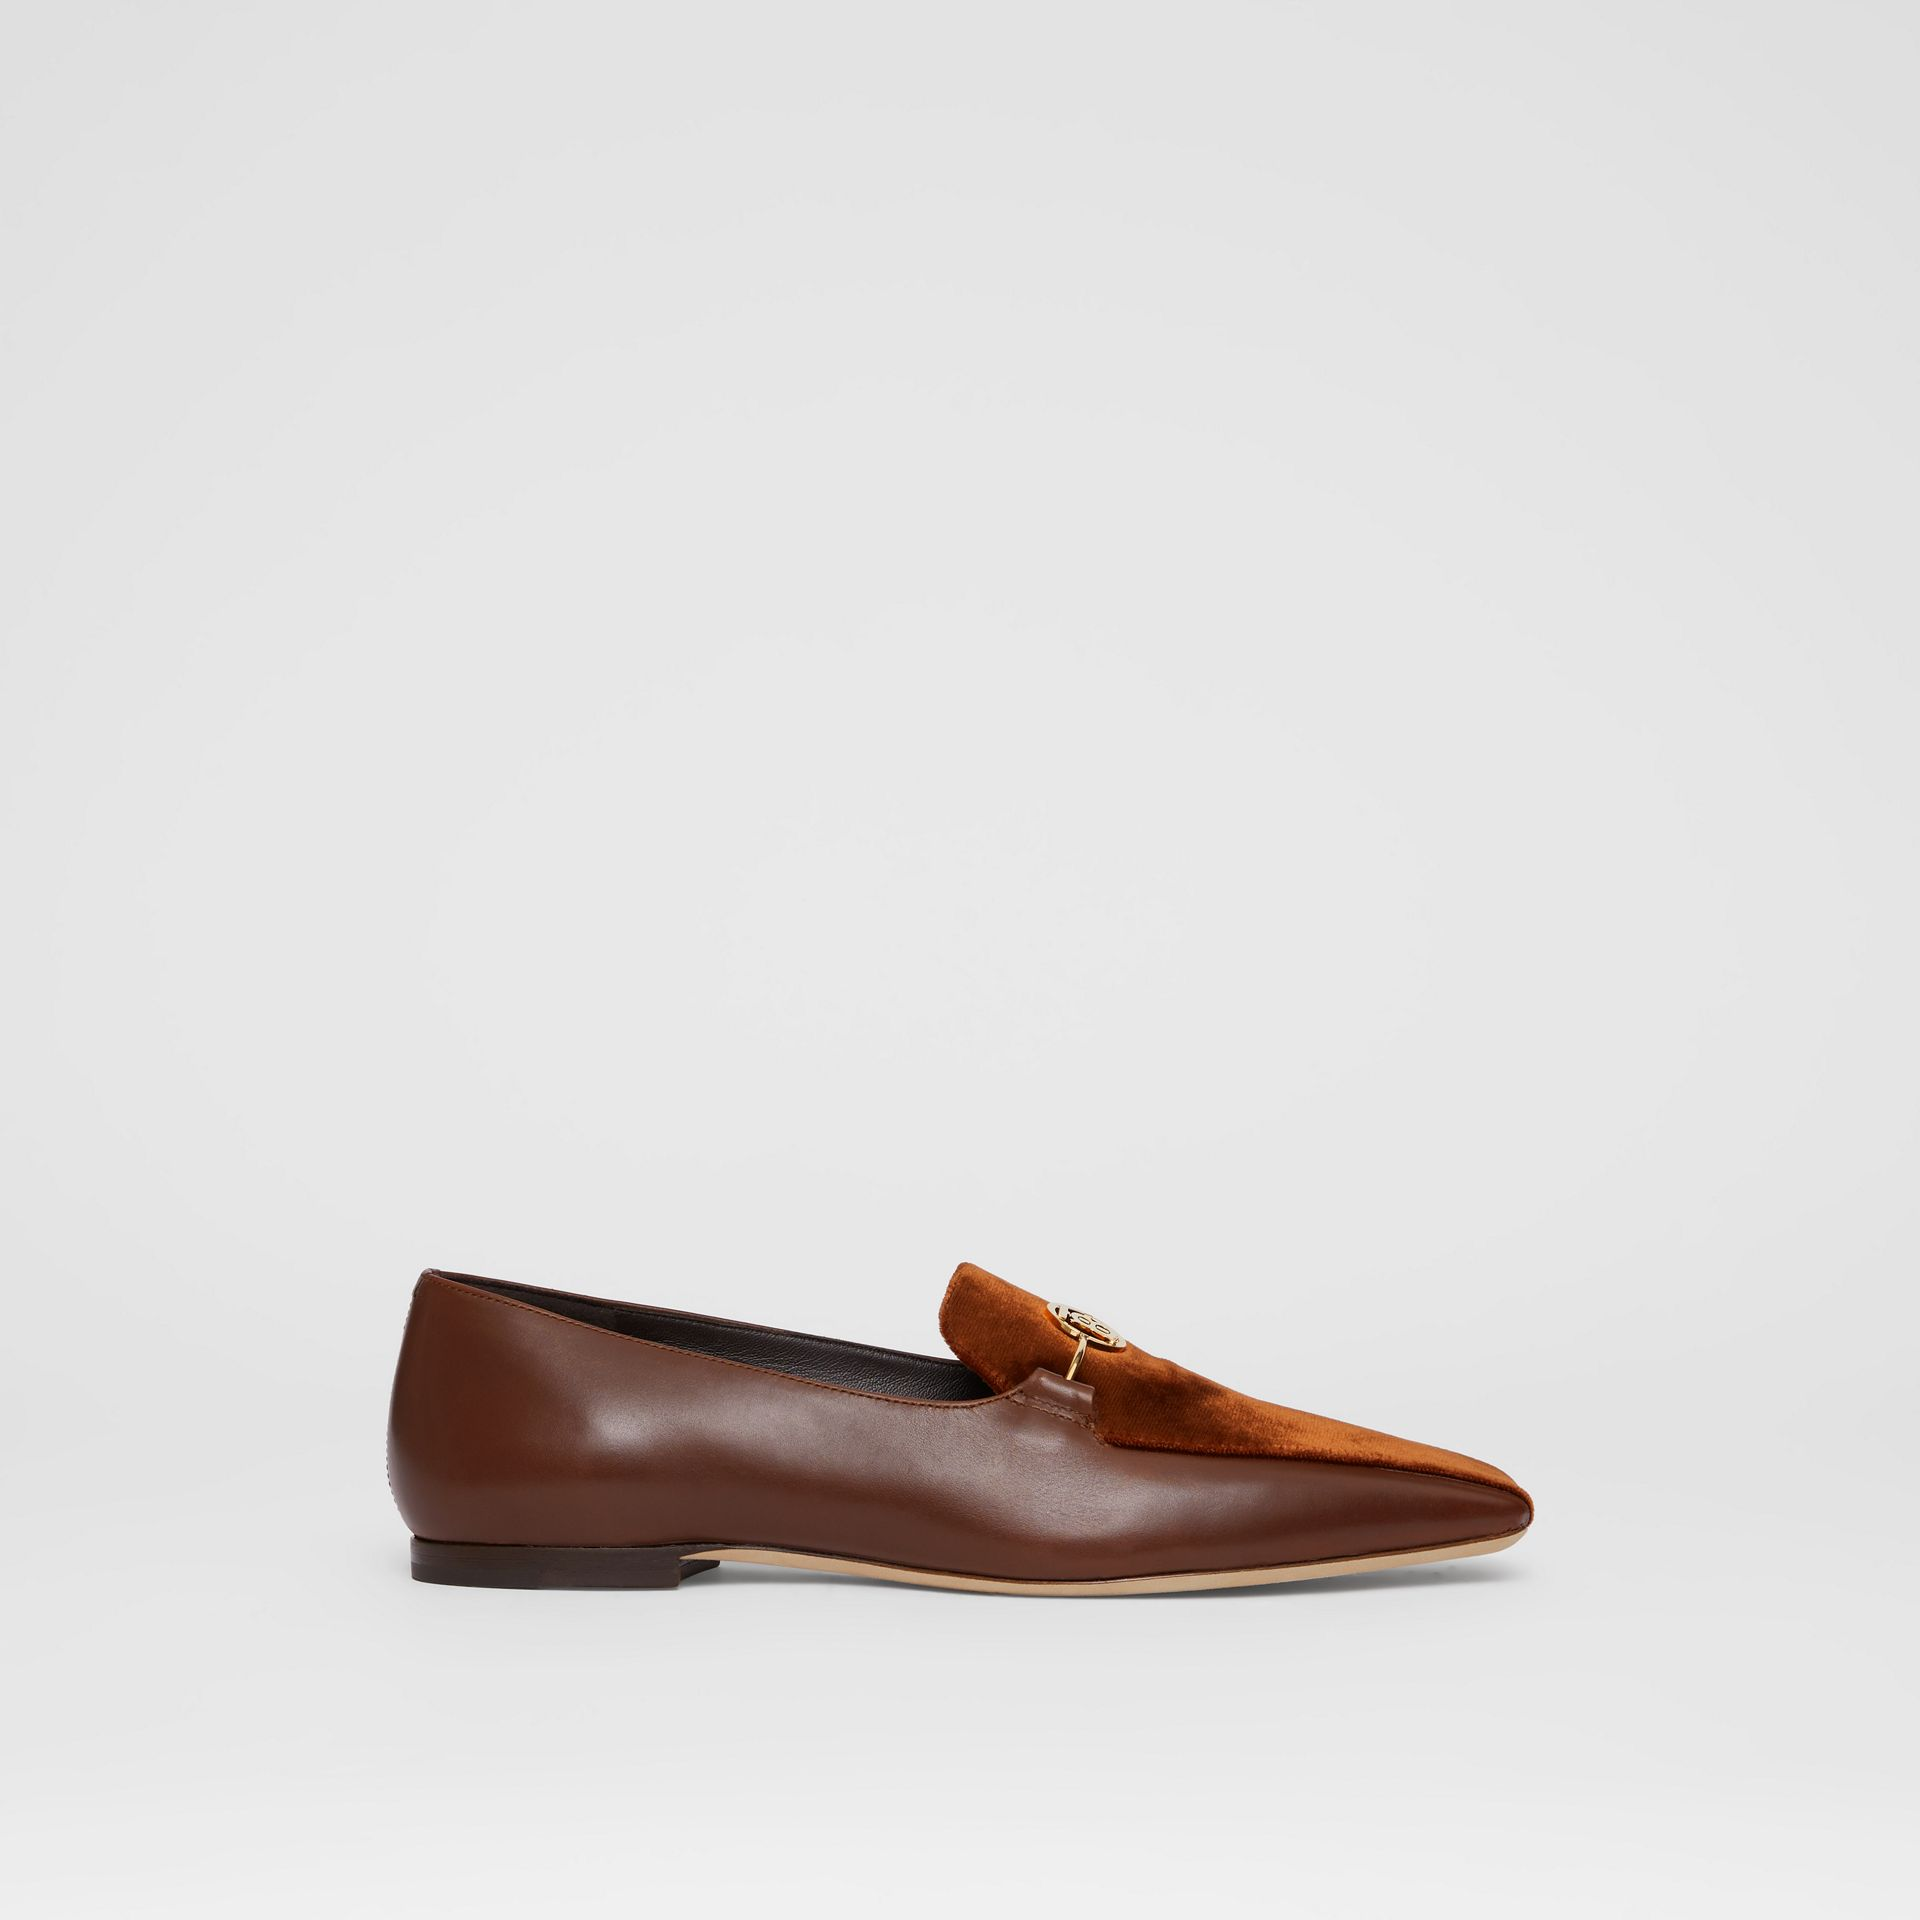 Monogram Motif Velvet and Leather Loafers in Dark Chocolate/tan - Women | Burberry Canada - gallery image 5